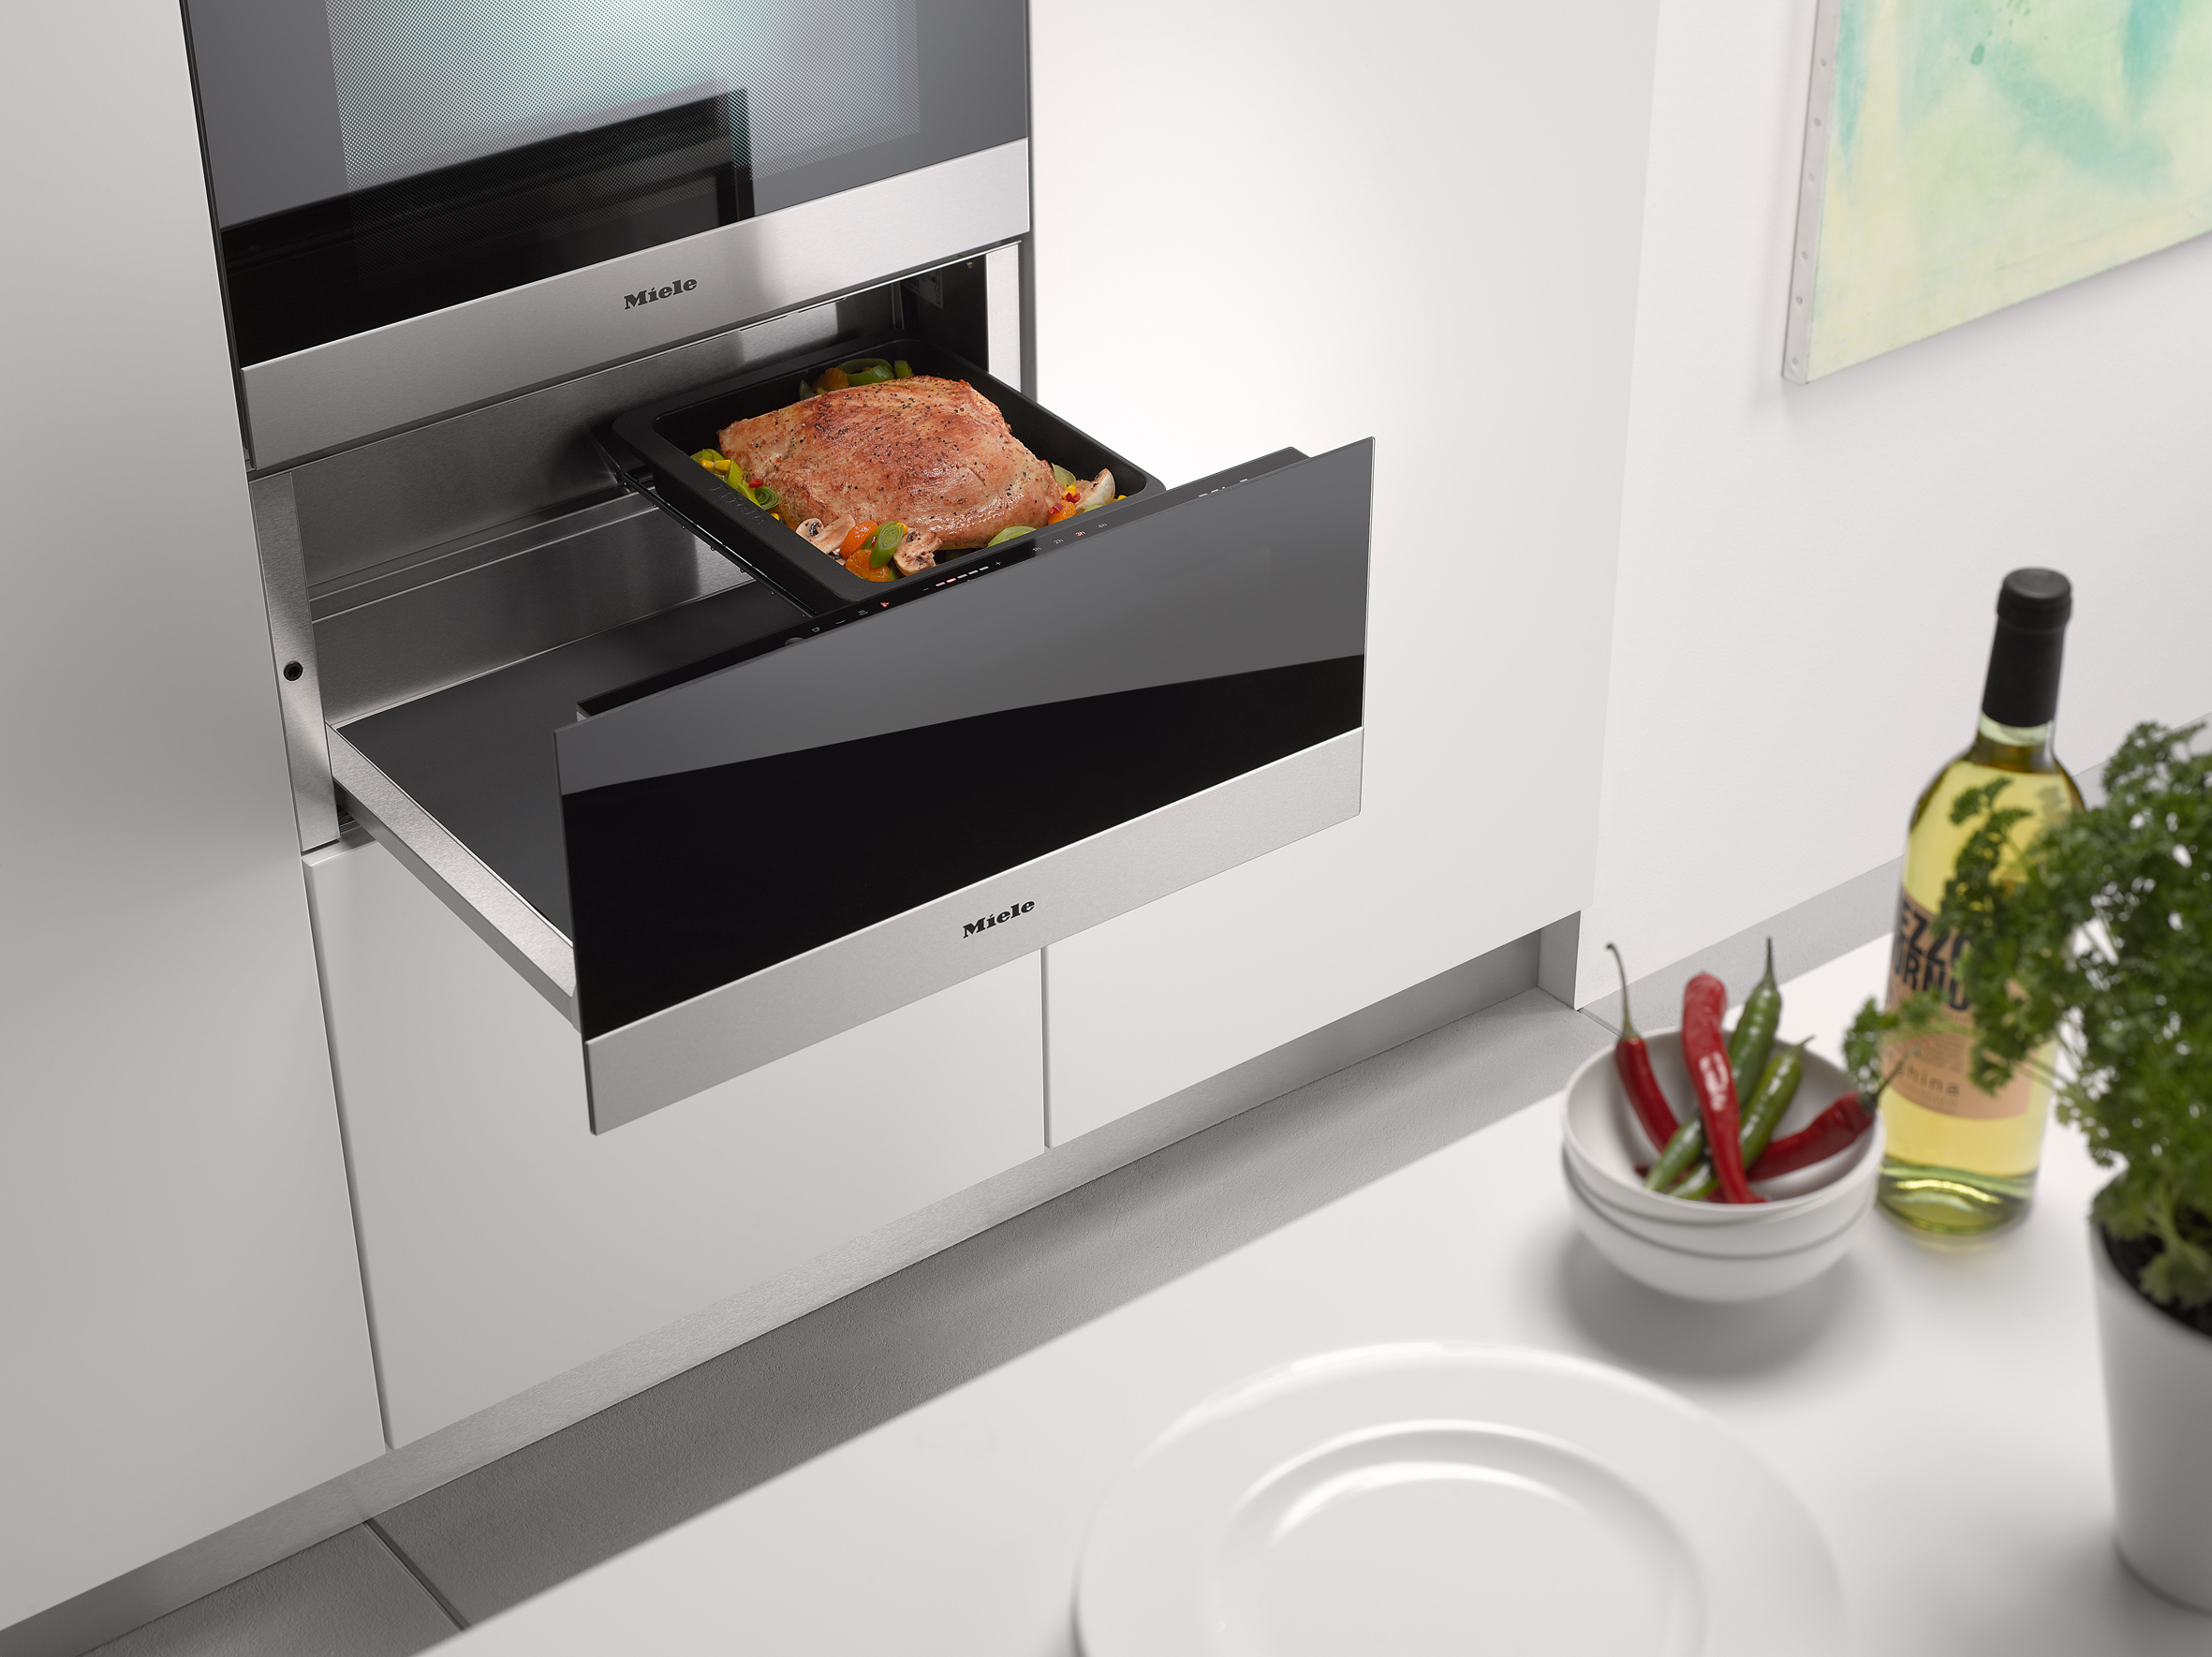 Miele Cooking Like a Pro at Home Gourmet Warming Drawer